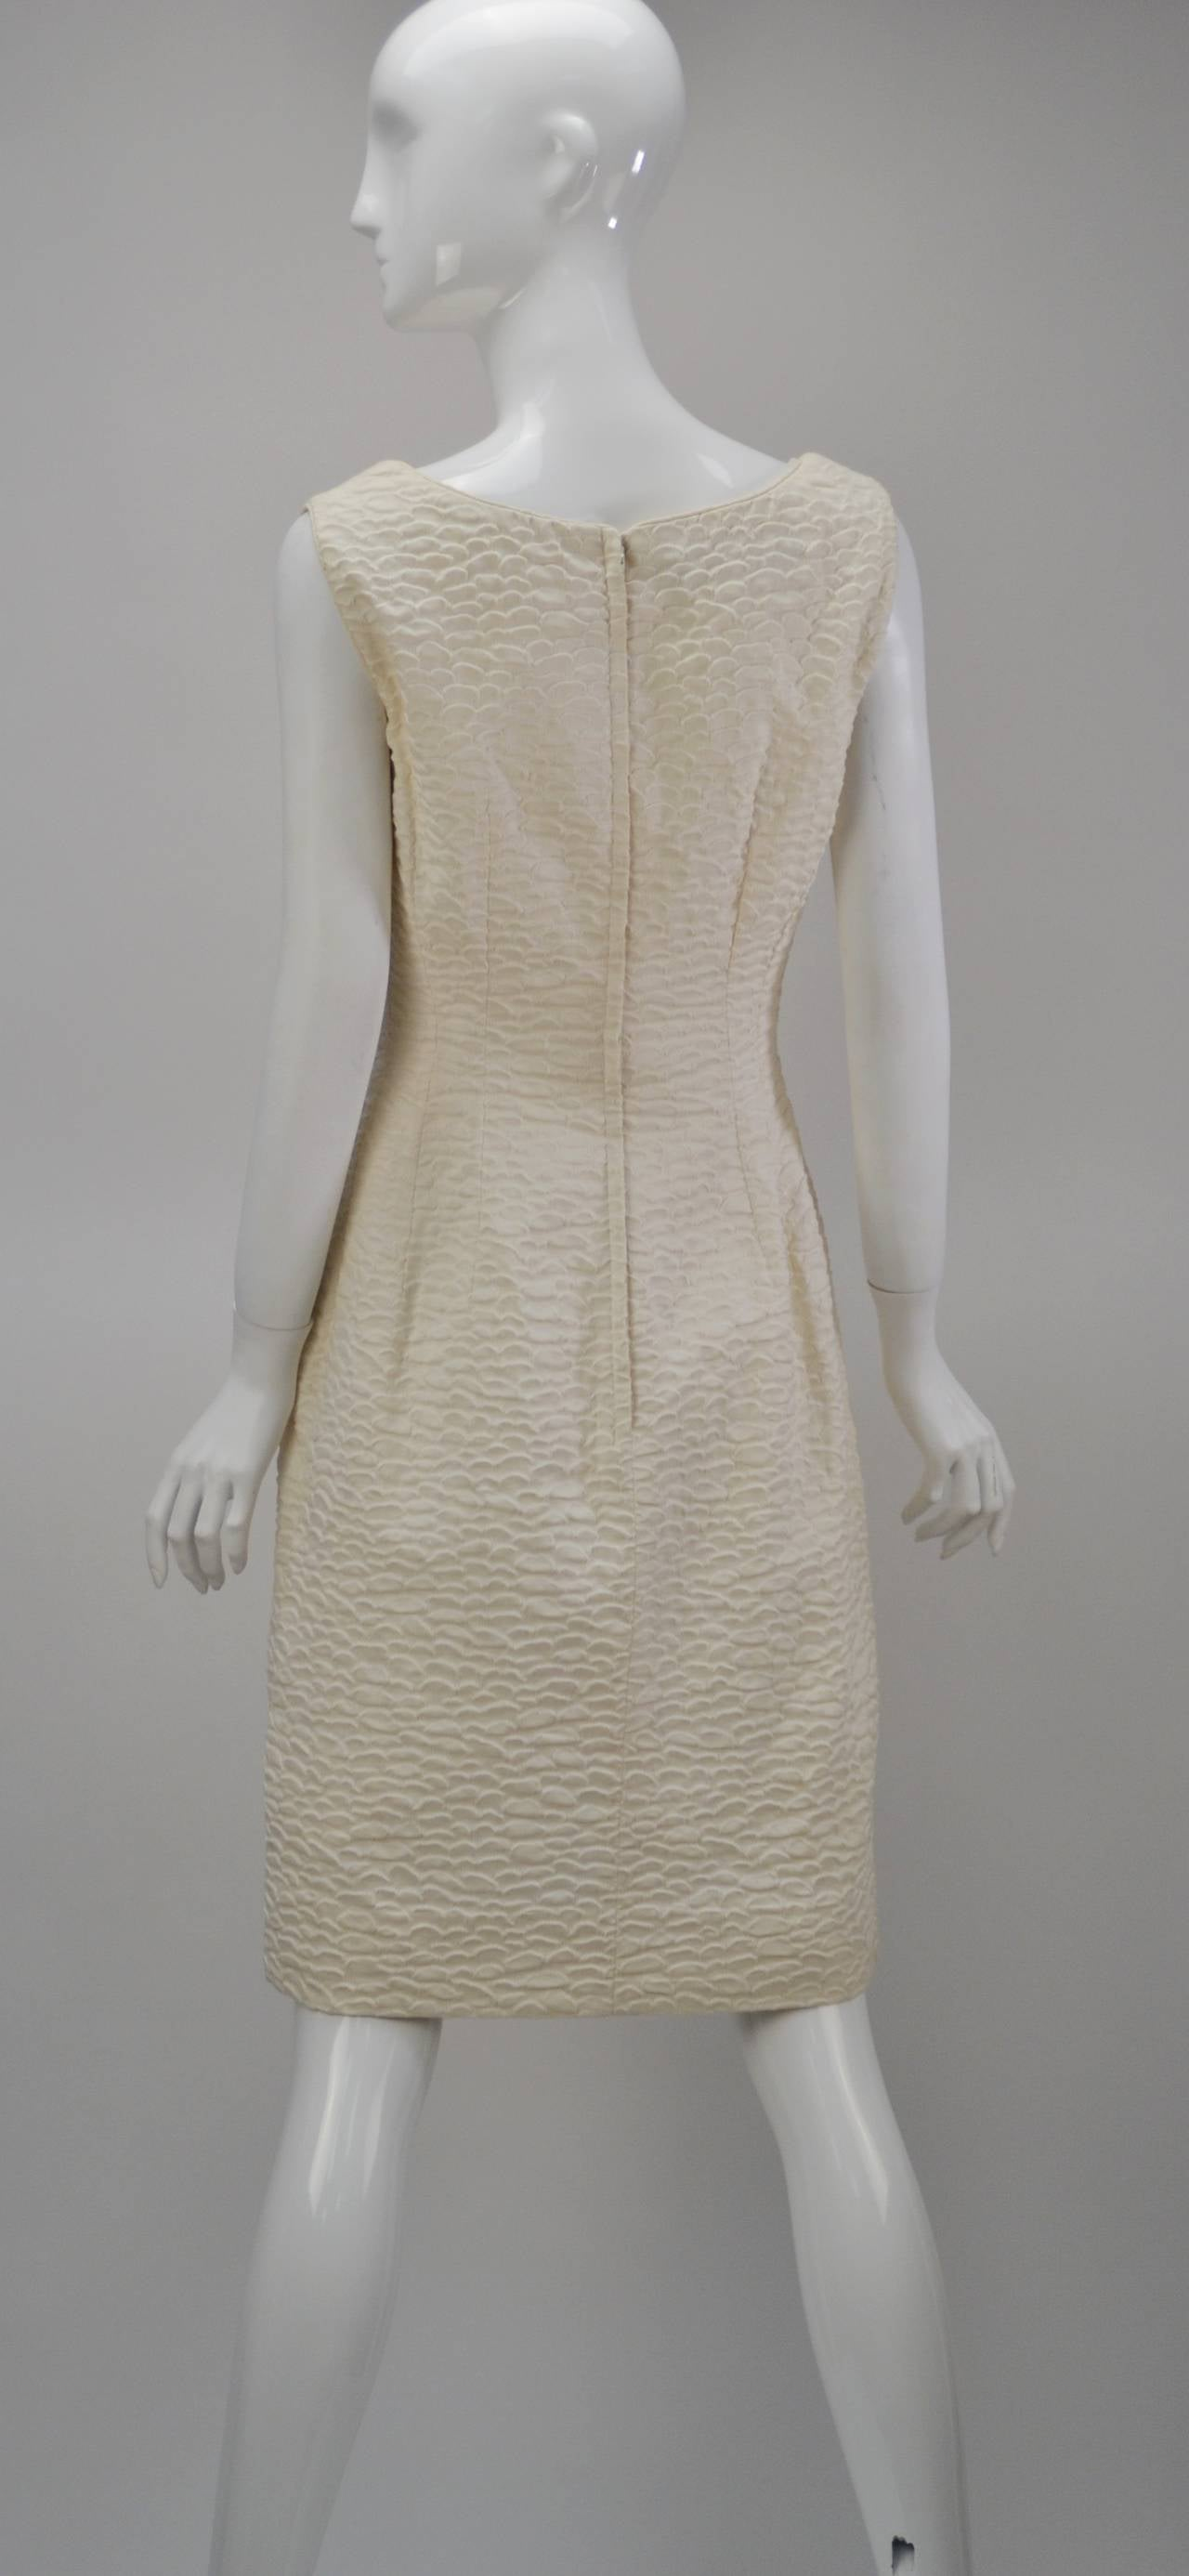 1960s Mr. Blackwell Ivory Textured Dress with Cape In Excellent Condition For Sale In Houston, TX